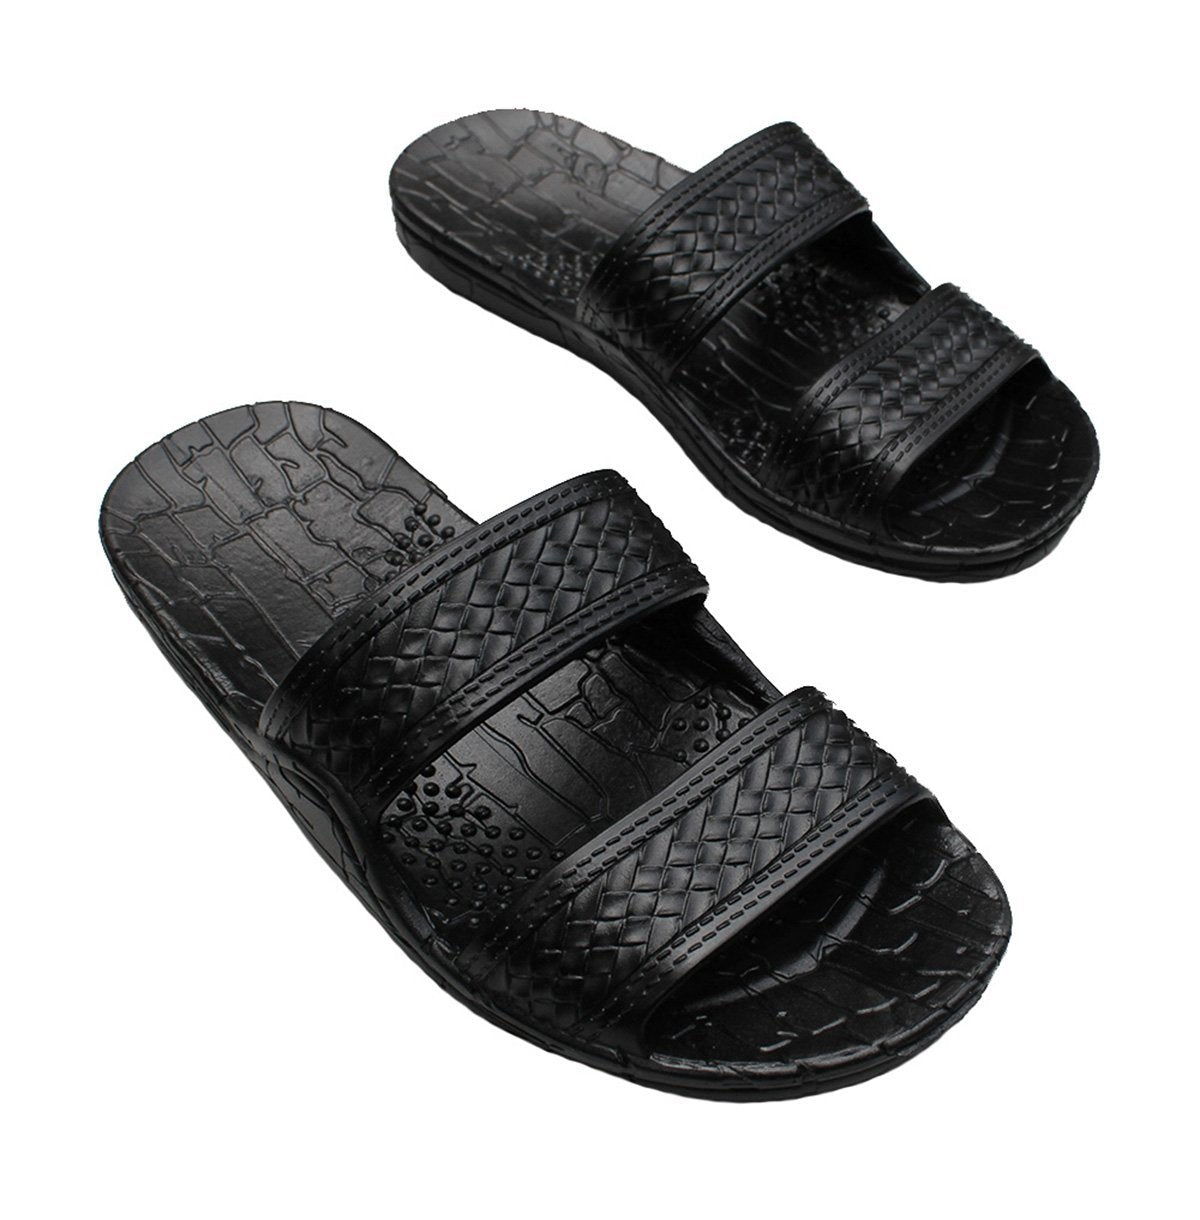 Brown Jesus Sandals | Black Jandals From Hawaii- AlohaShoes.com